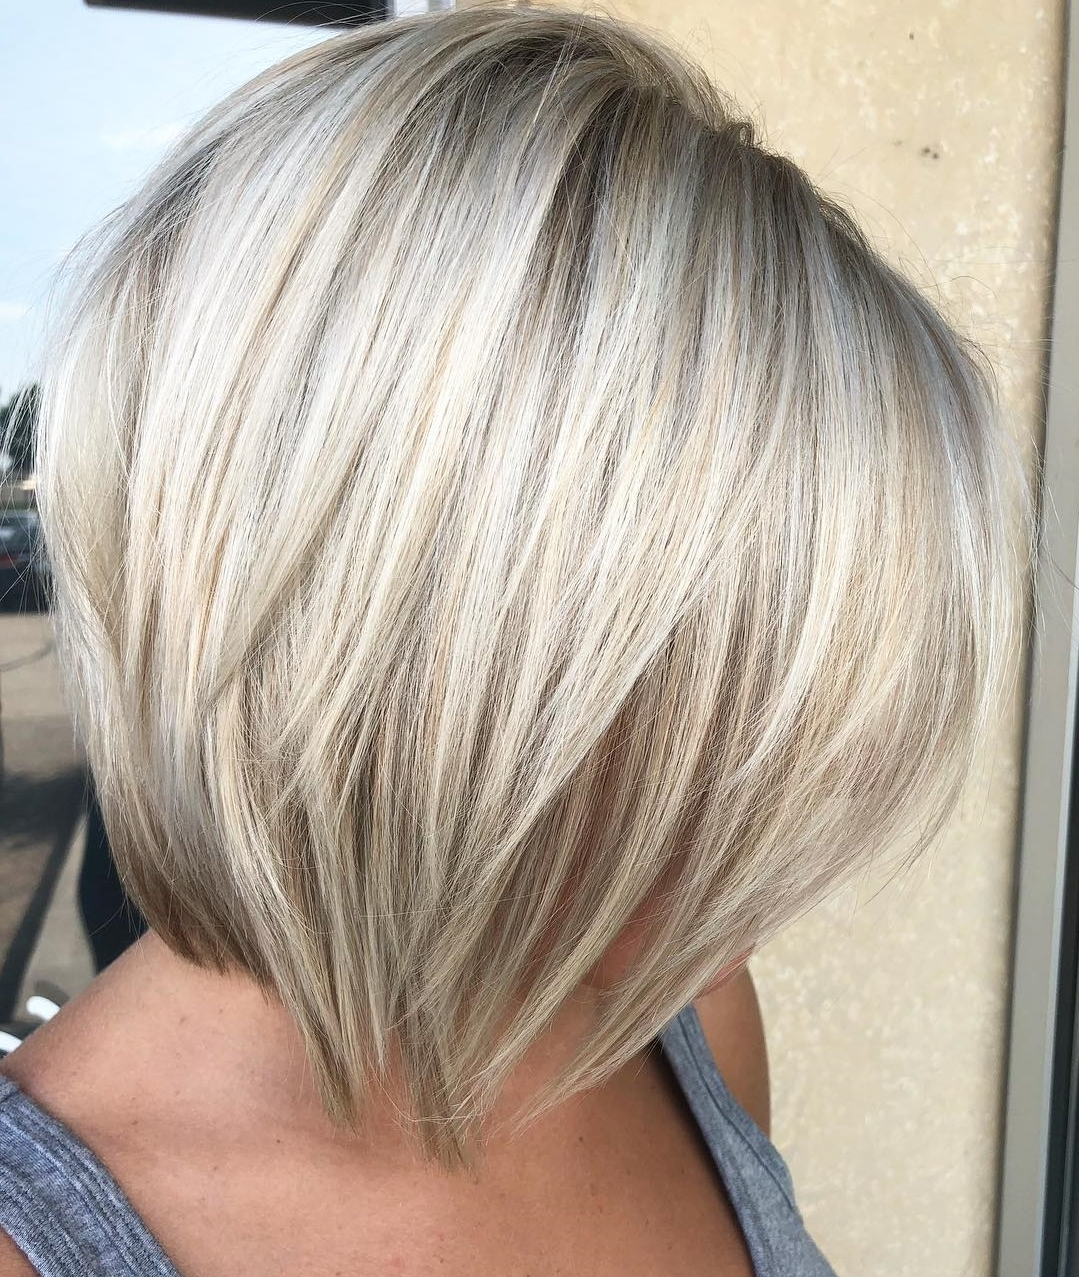 45 Short Hairstyles For Fine Hair To Rock In 2020 With Latest Jaw Length Short Bob Hairstyles For Fine Hair (View 14 of 20)